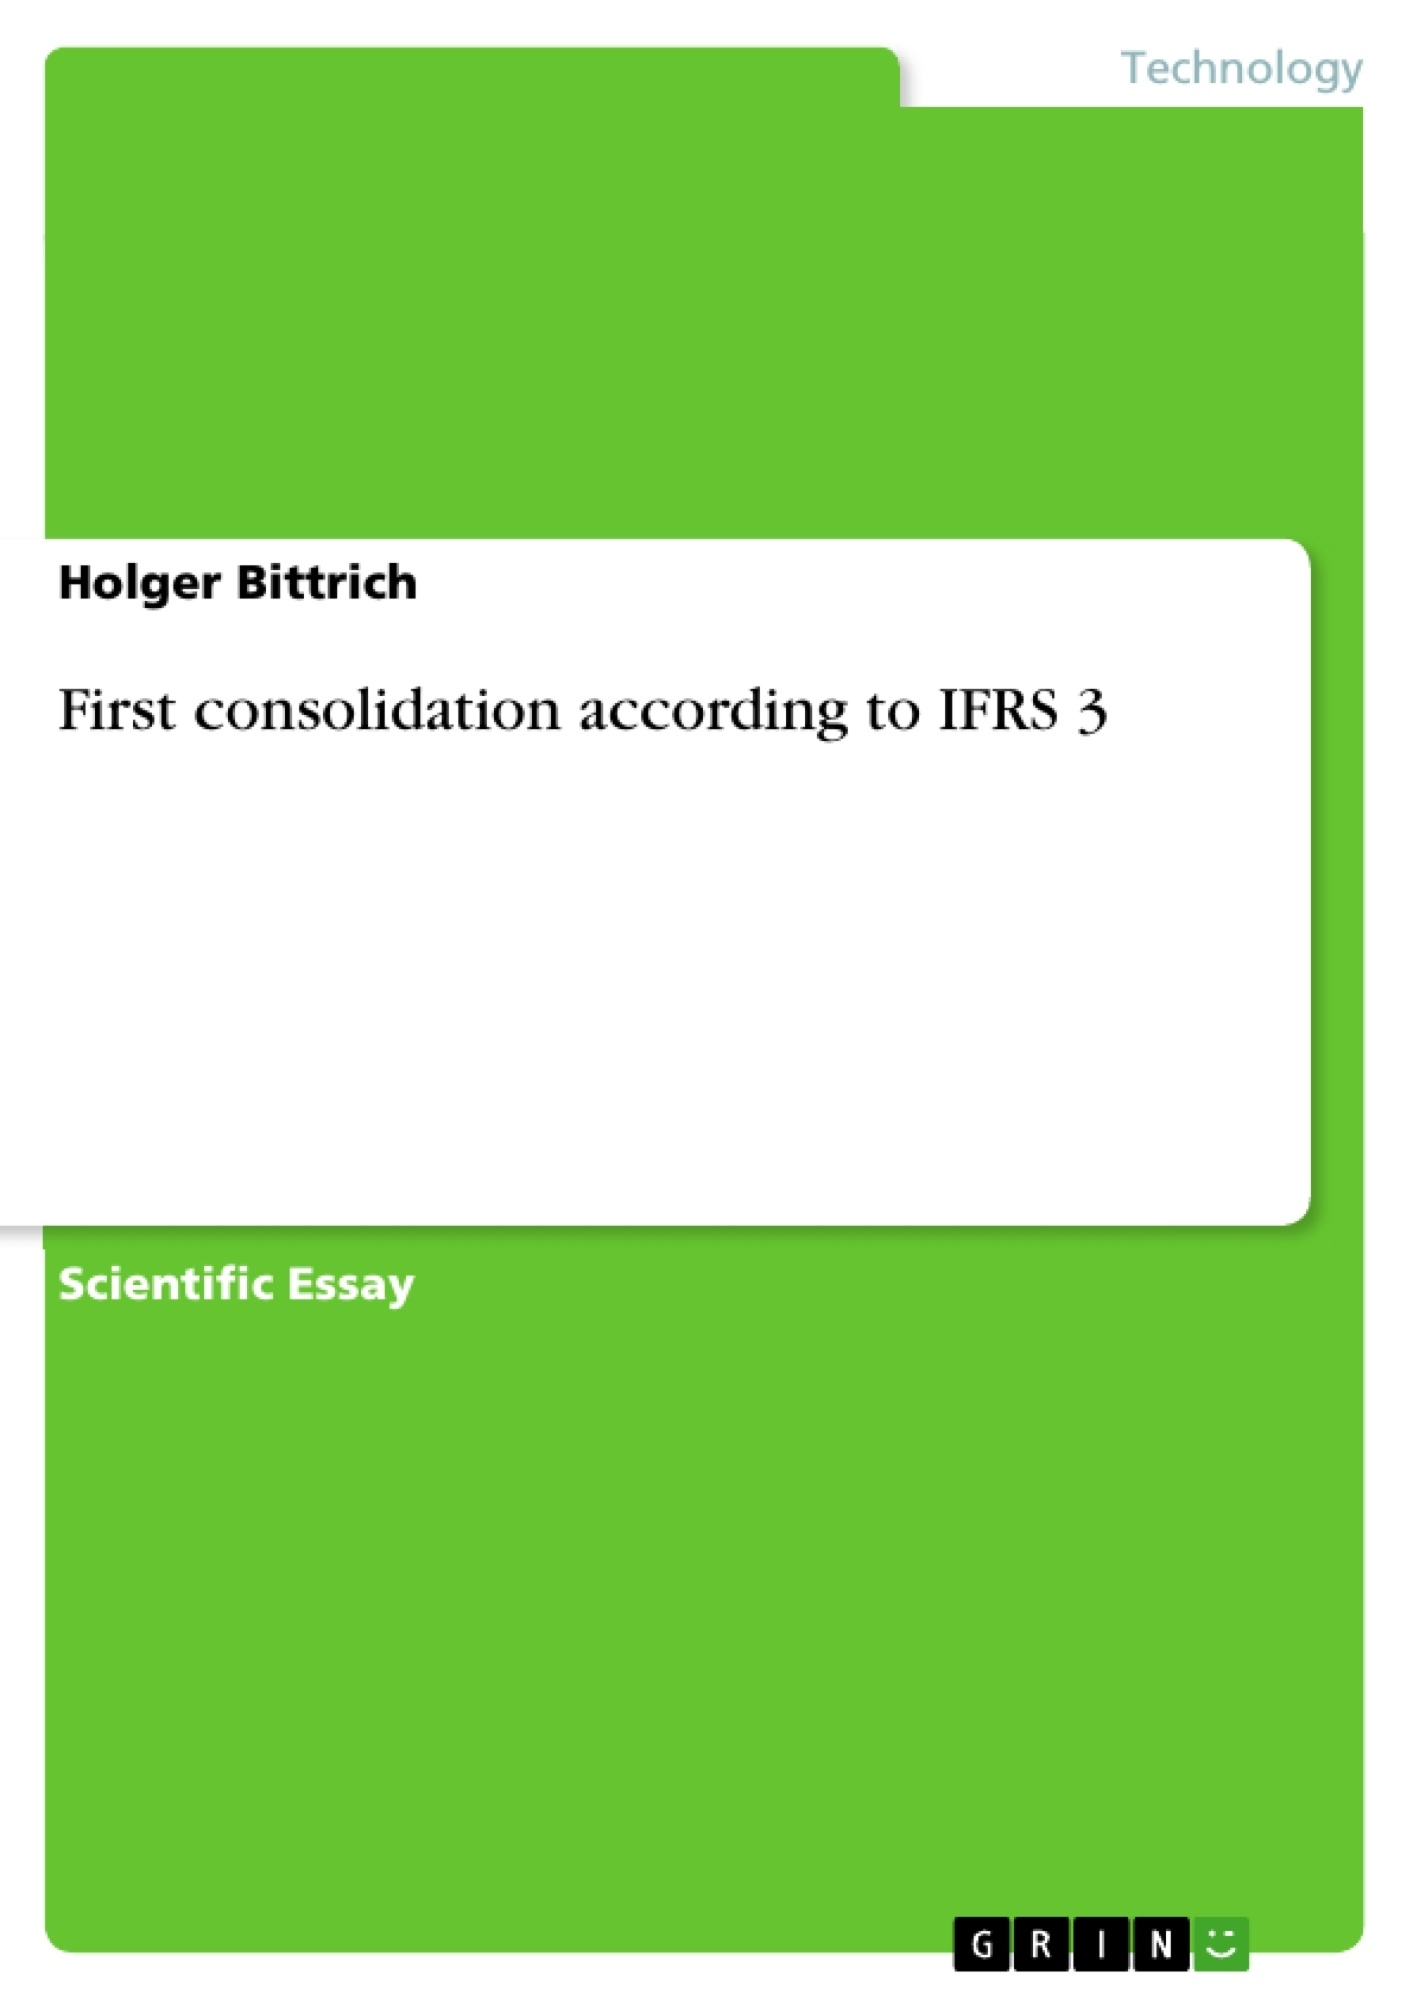 Title: First consolidation according to IFRS 3